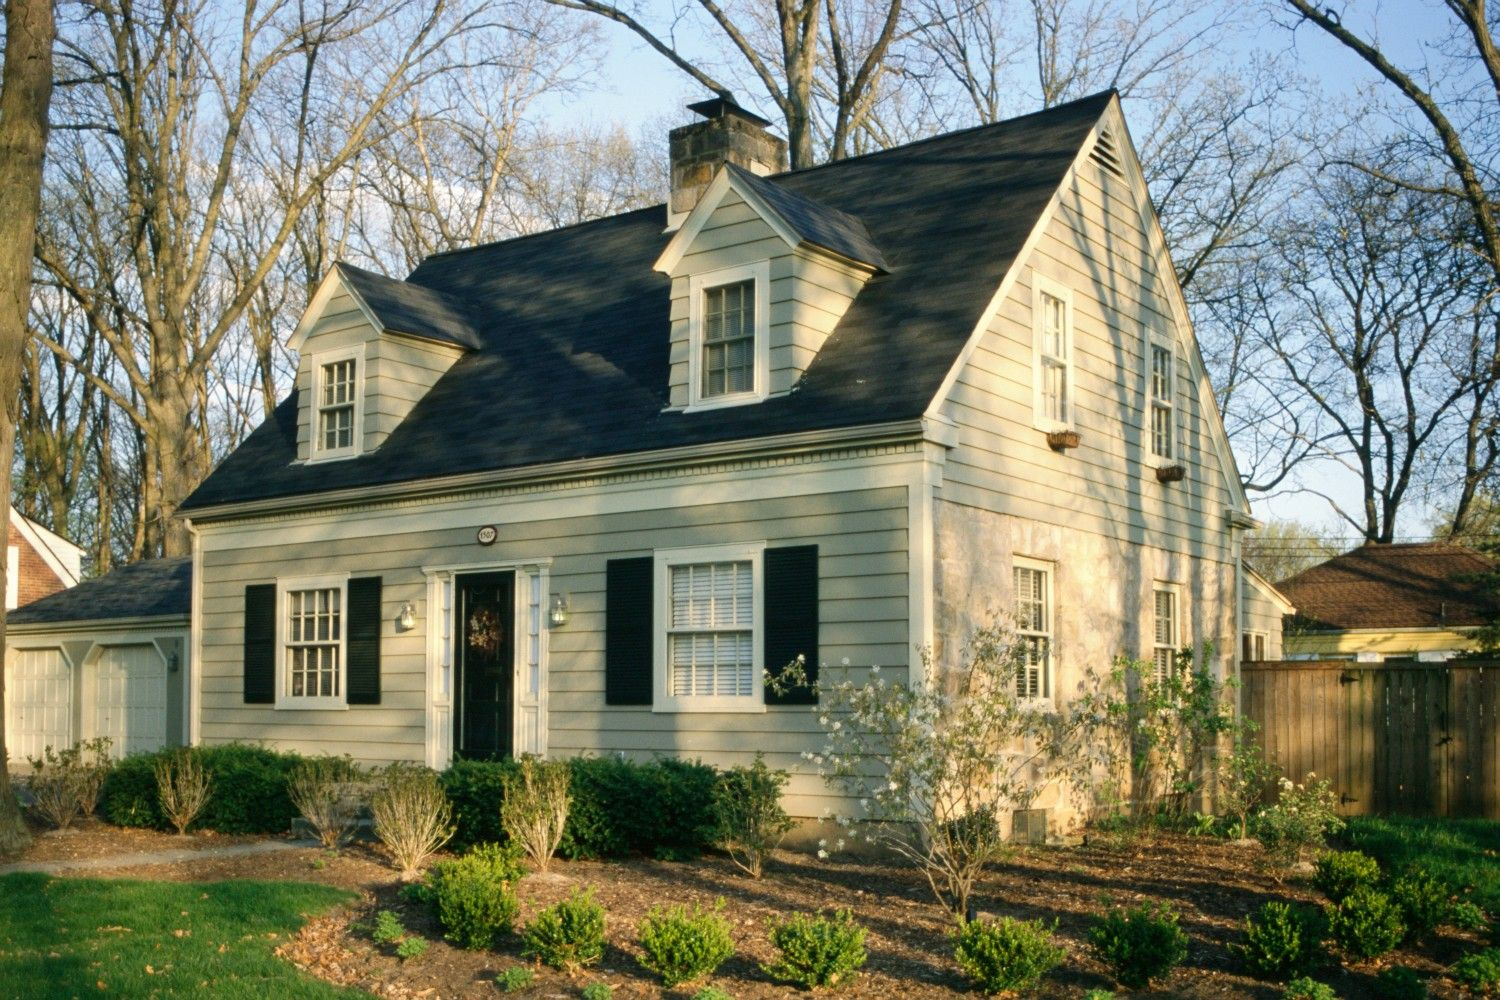 Cape Cod House Style Ideas And Floor Plans Interior - Colonial cape cod style house plans